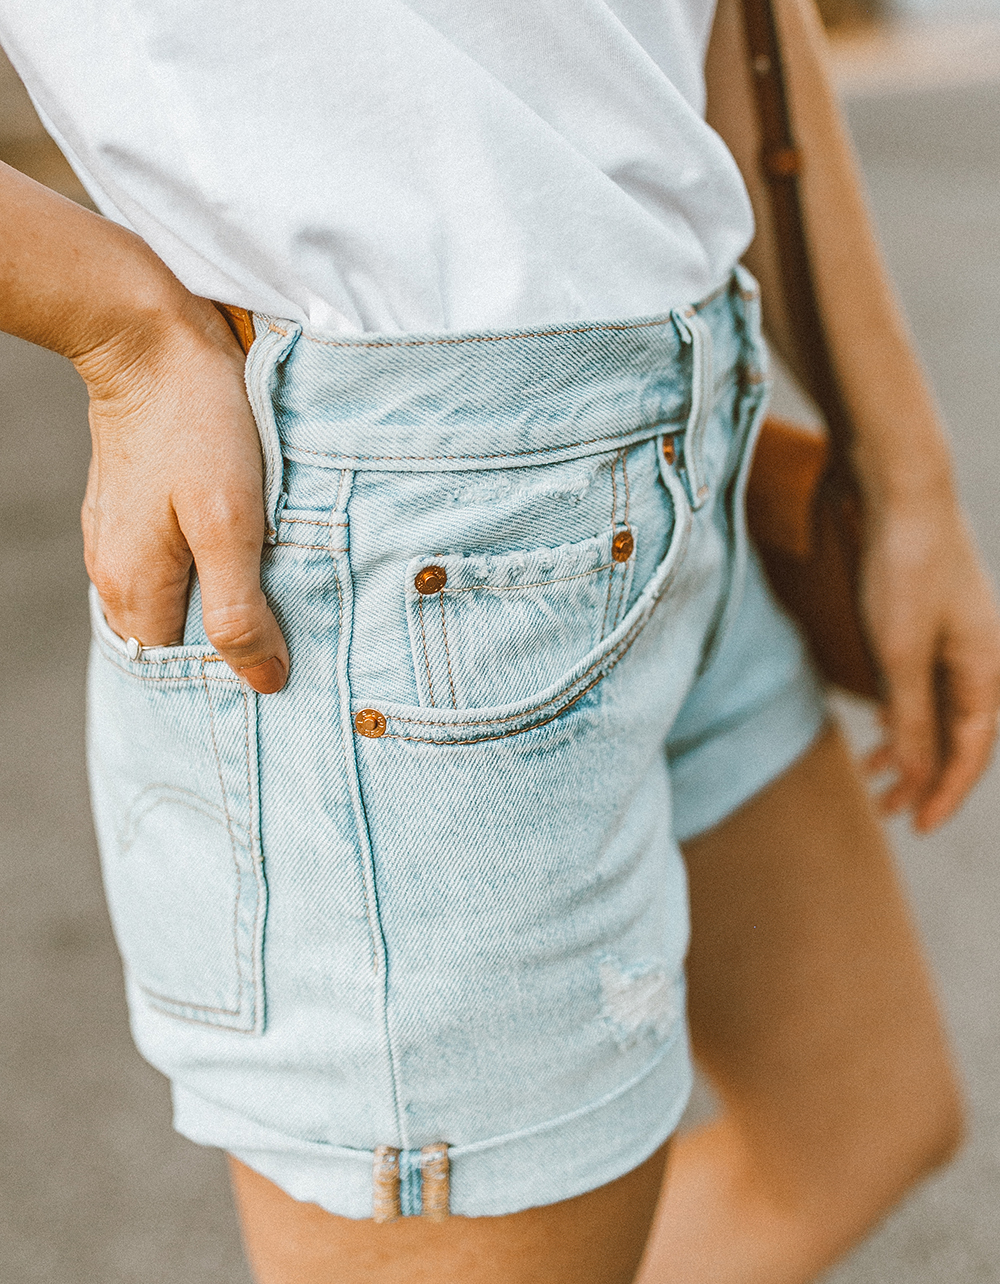 livvyland-blog-olivia-watson-austin-texas-fashion-style-blogger-what-to-wear-levis-501-denim-shorts-festival-outfit-idea-9